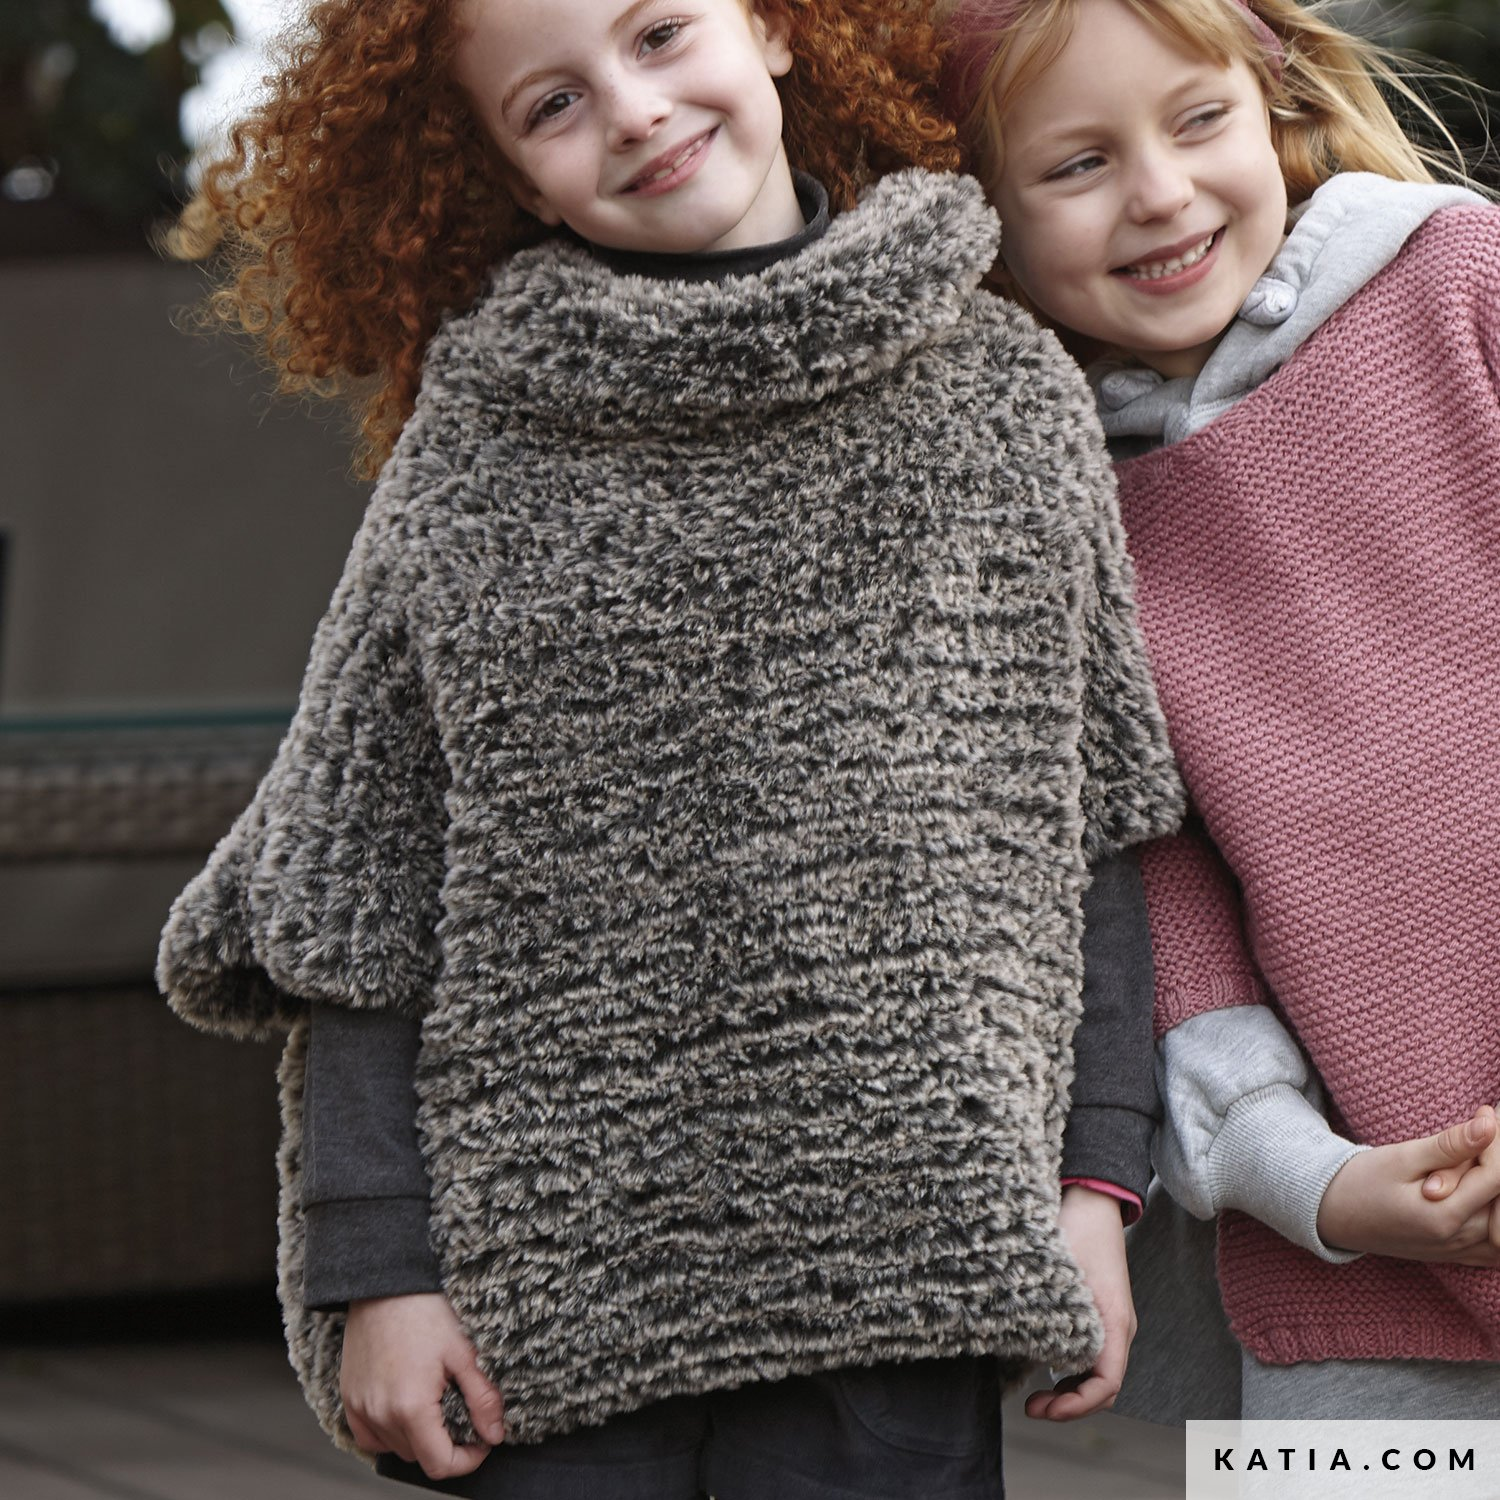 Poncho - Kinder - Herbst / Winter - Modelle & Anleitungen | Katia.com